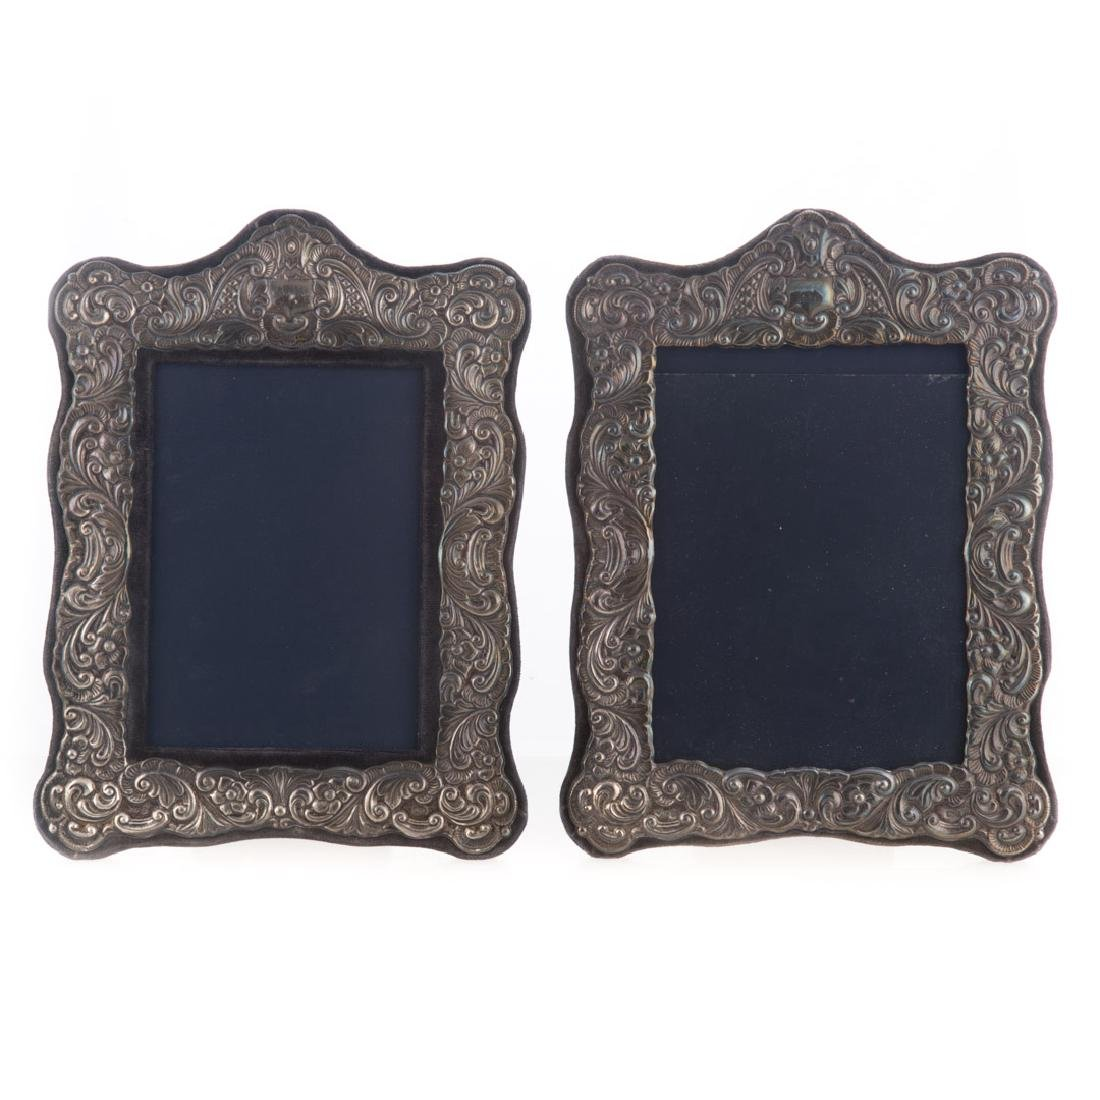 Pair of repousse sterling 5 x 7 picture frames - 3